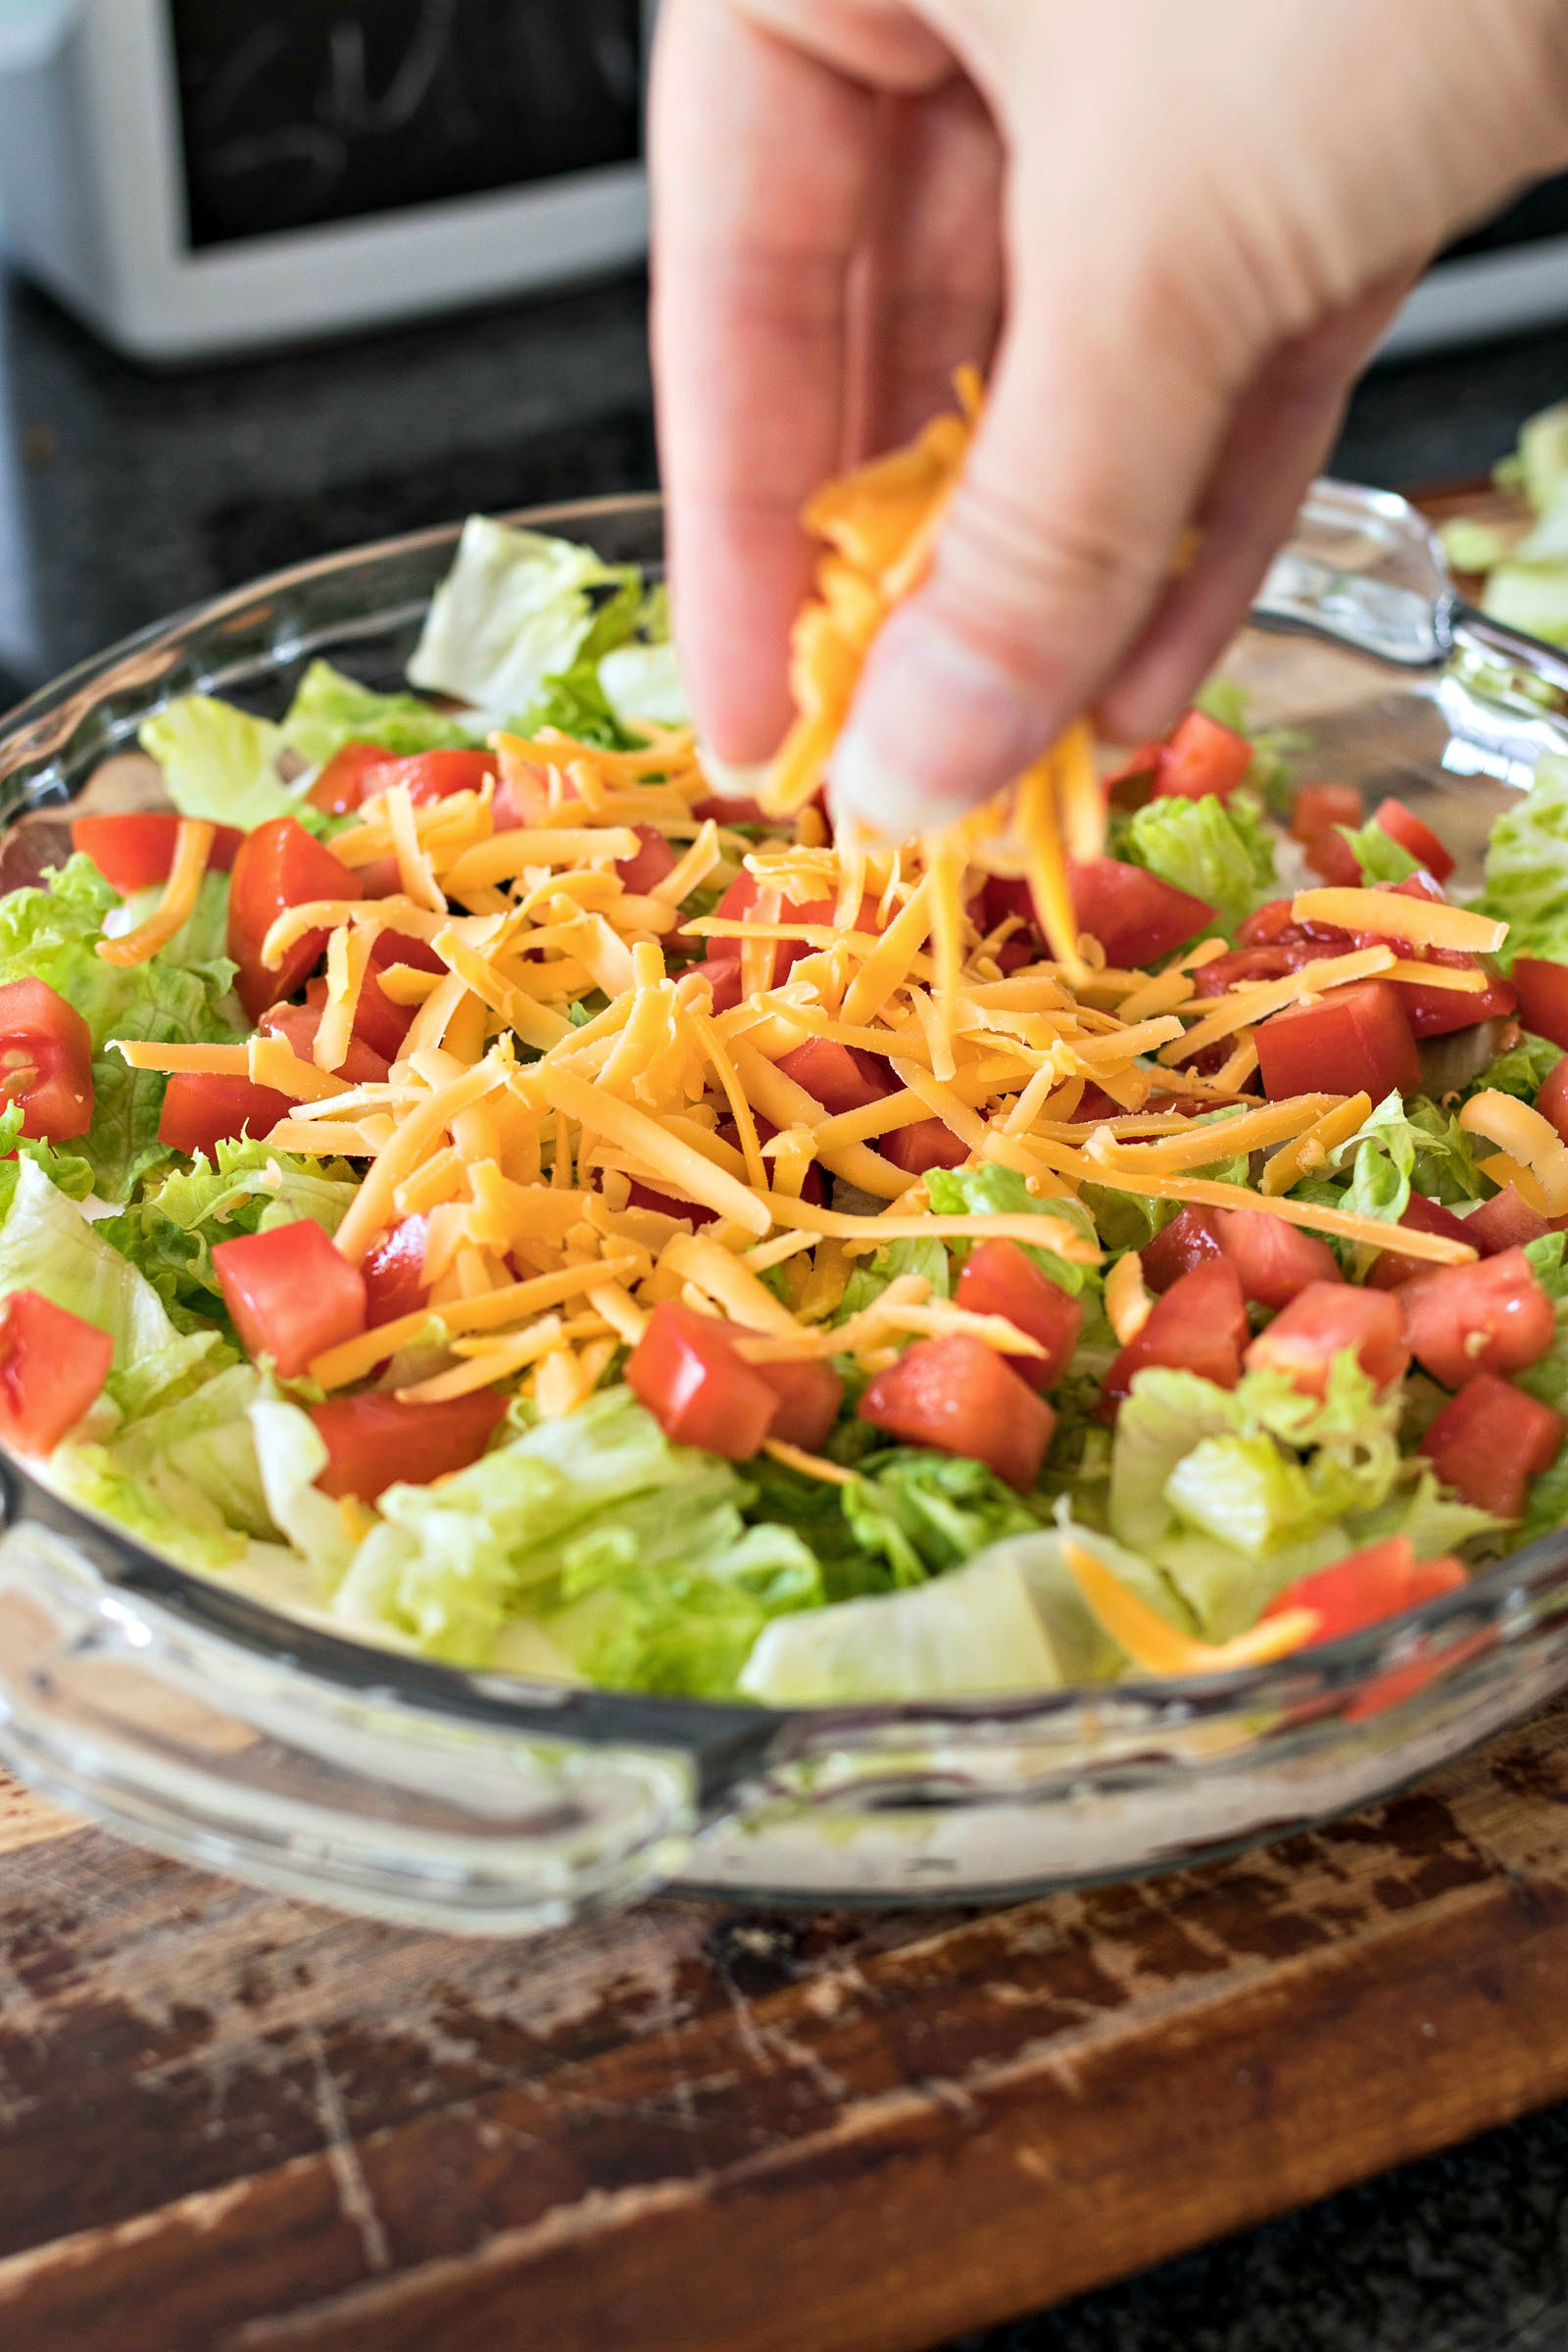 Adding shredded cheese on top of lettuce and tomatoes